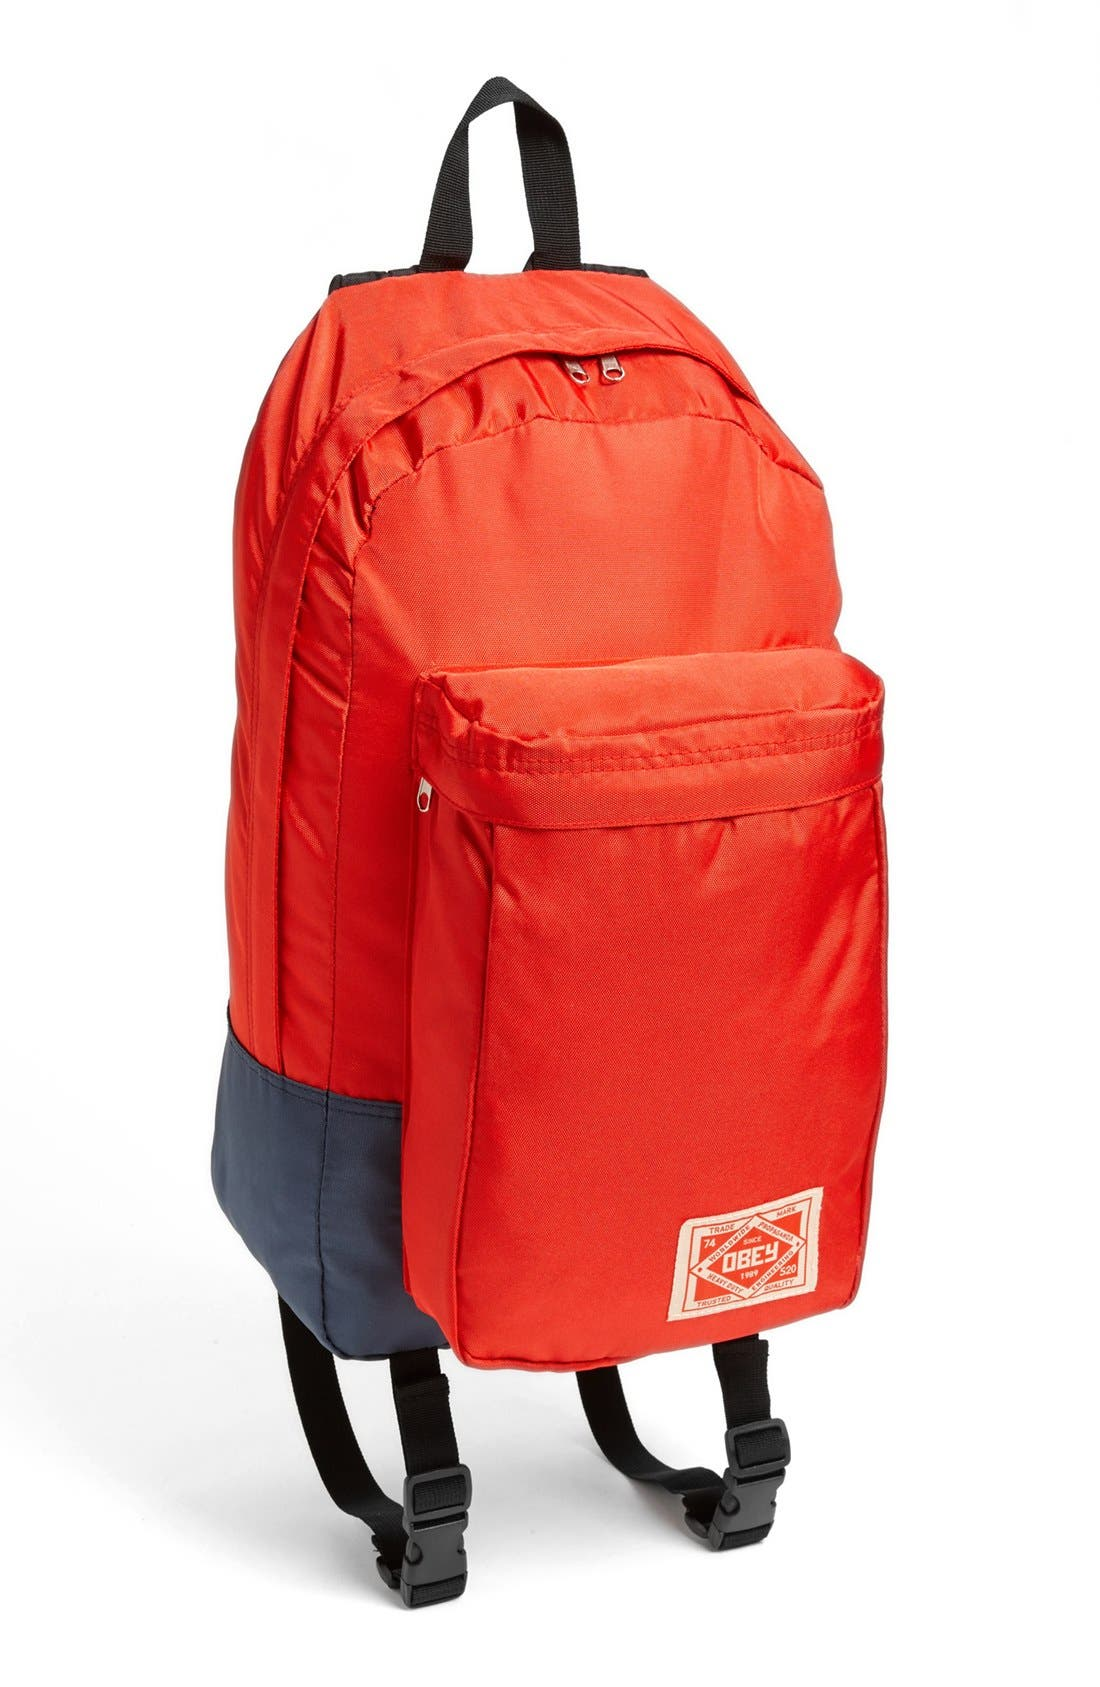 Alternate Image 1 Selected - Obey 'Commuter' Backpack